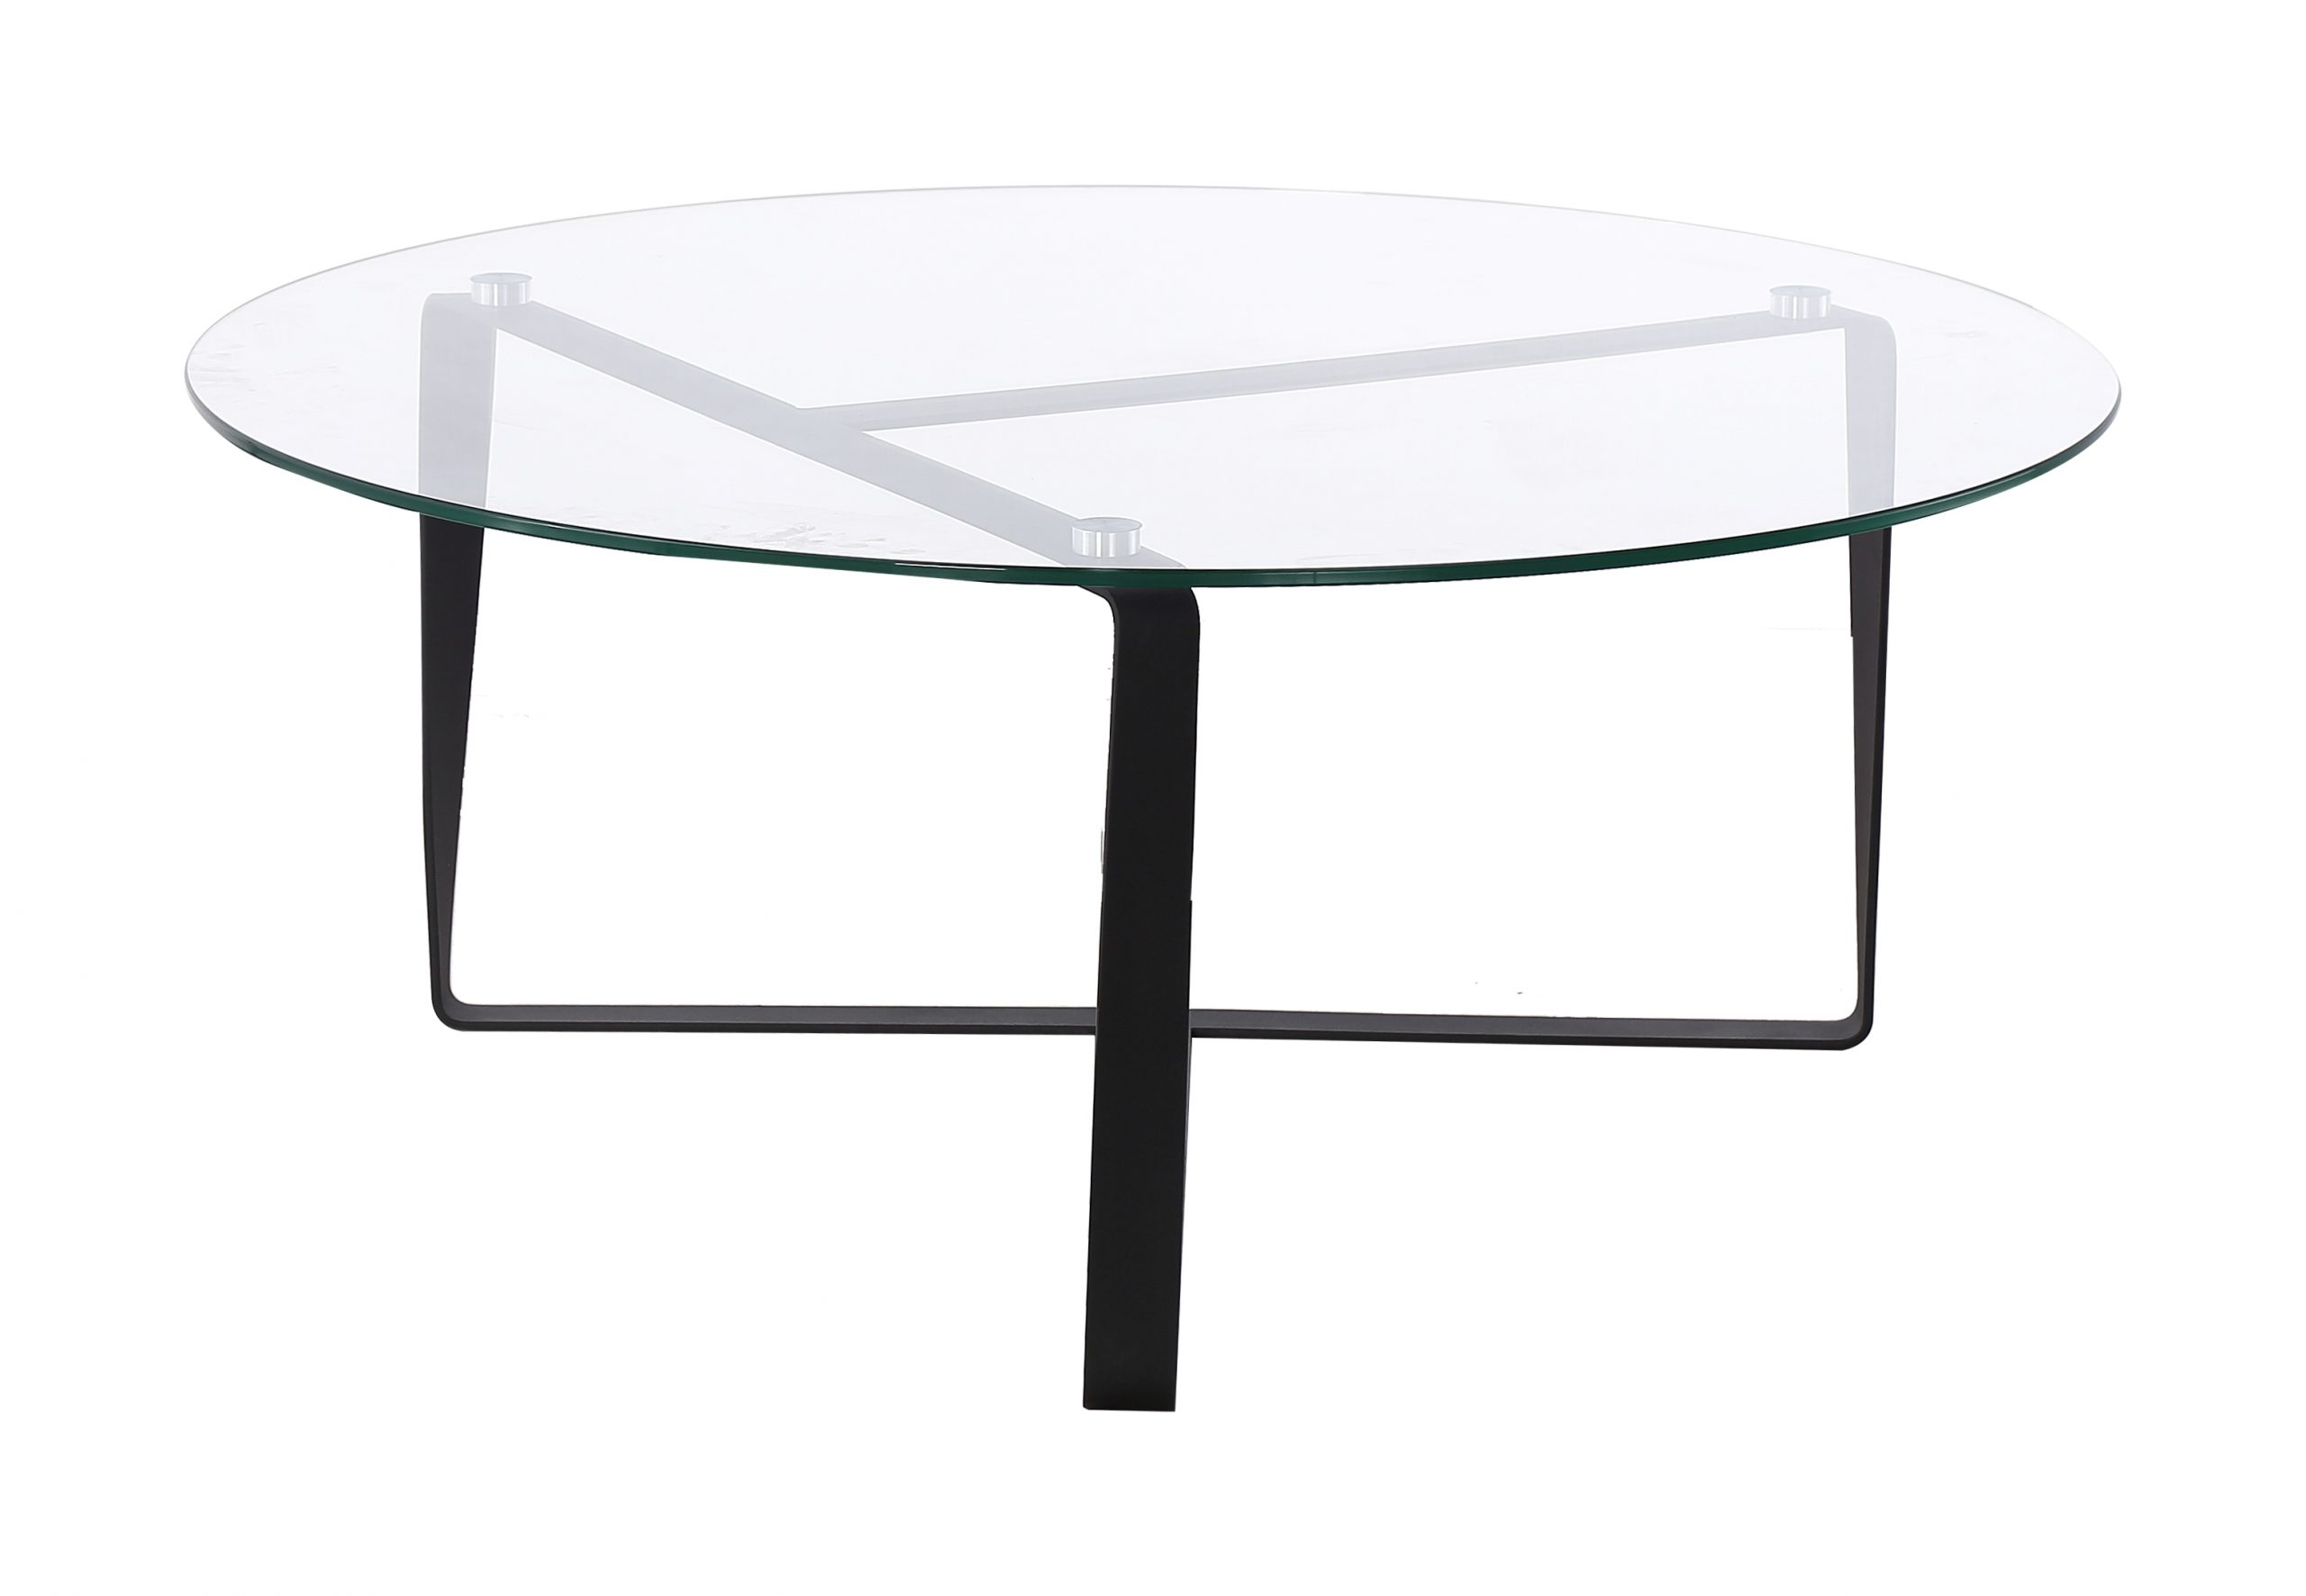 arv ha121 table basse metal noir verre